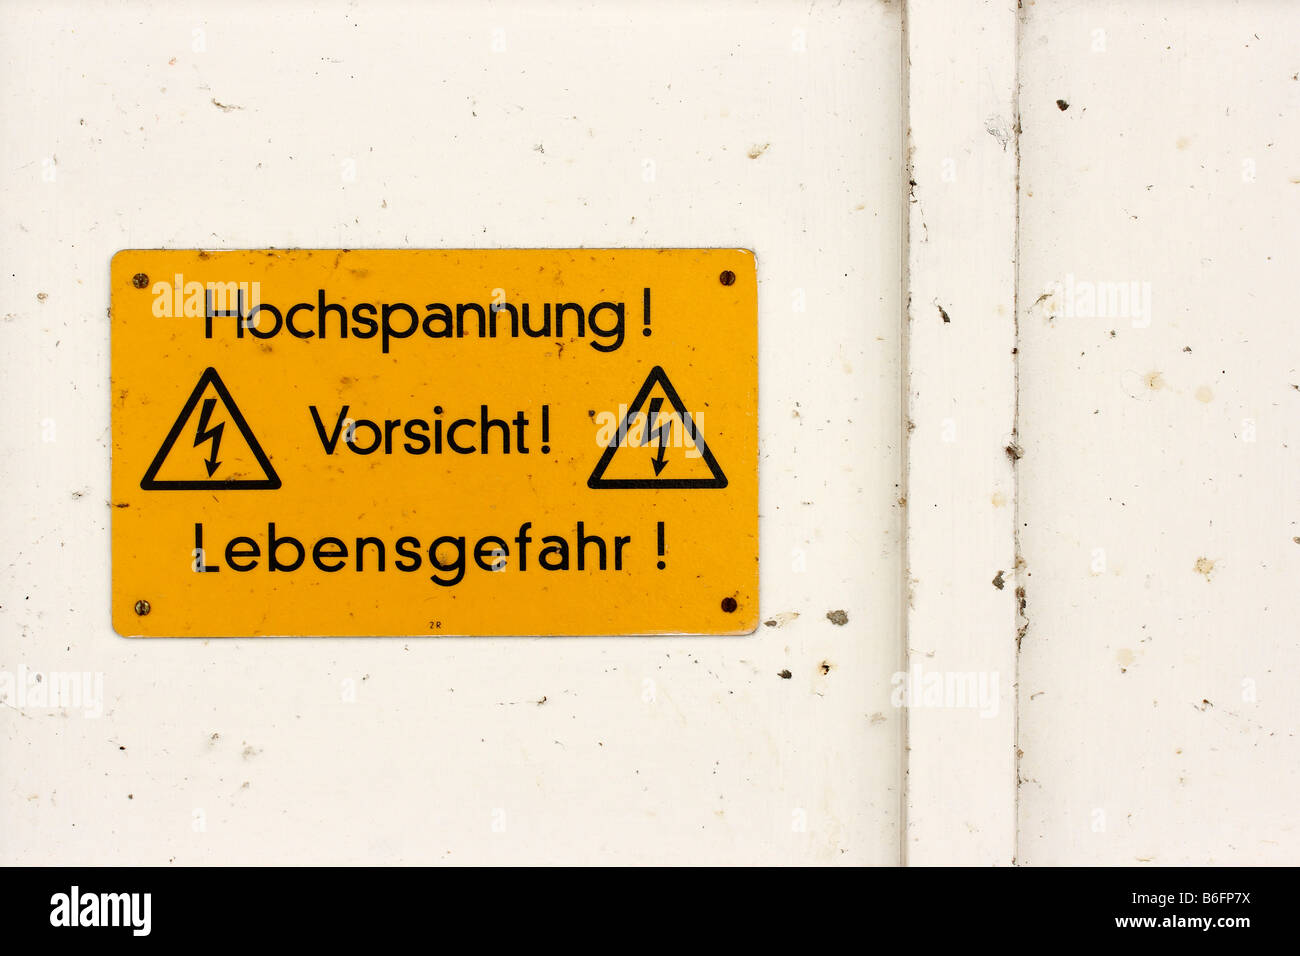 High tension! Caution! Danger! Instruction and warning sign on a house wall - Stock Image